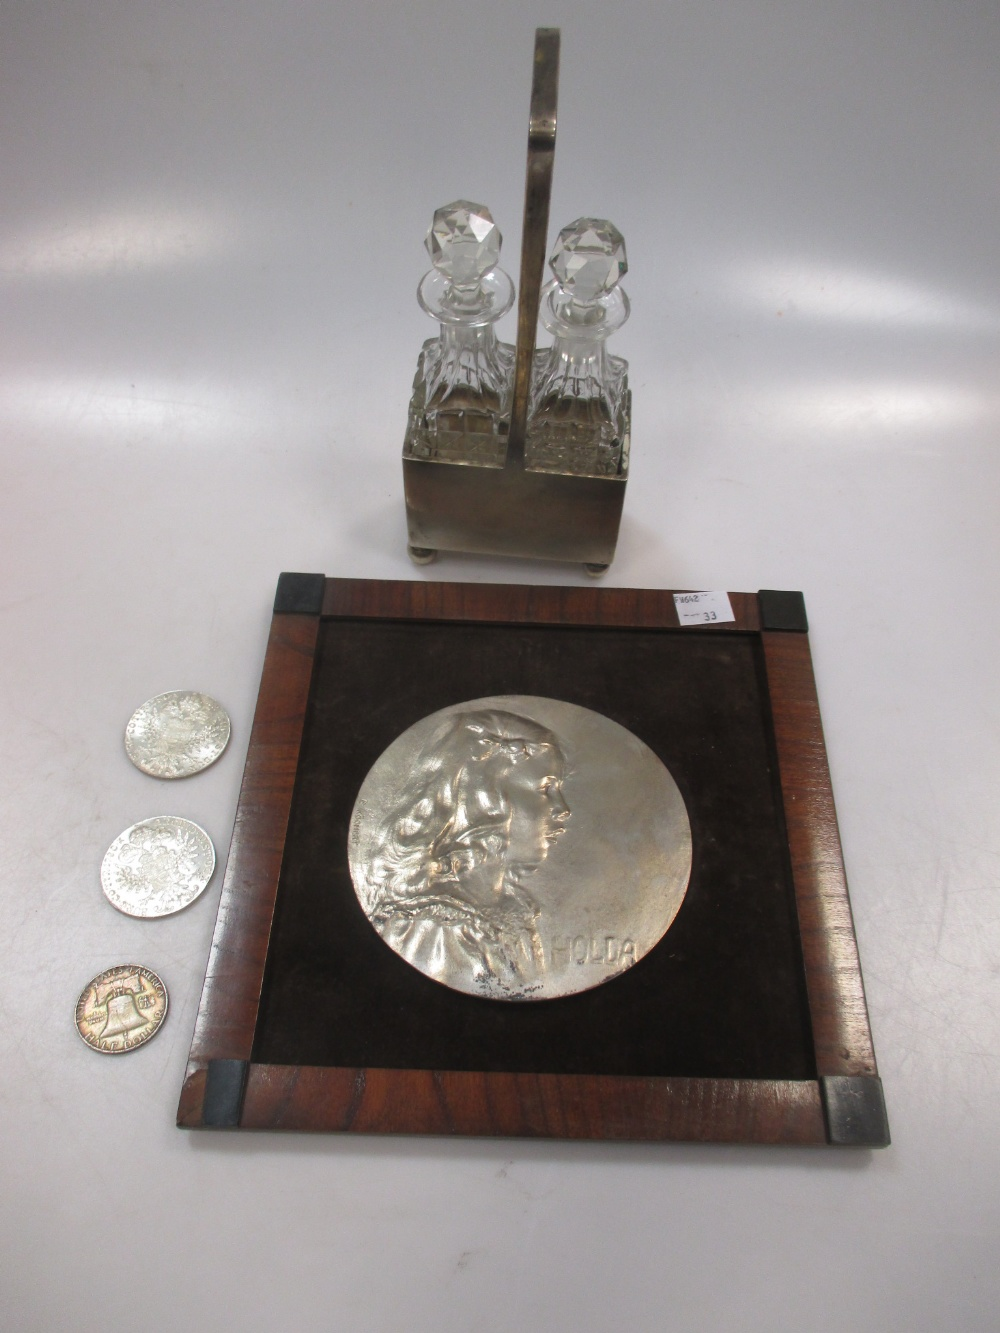 A Continental silver cruet set with a pair of glass bottles, three silver coins and a plated